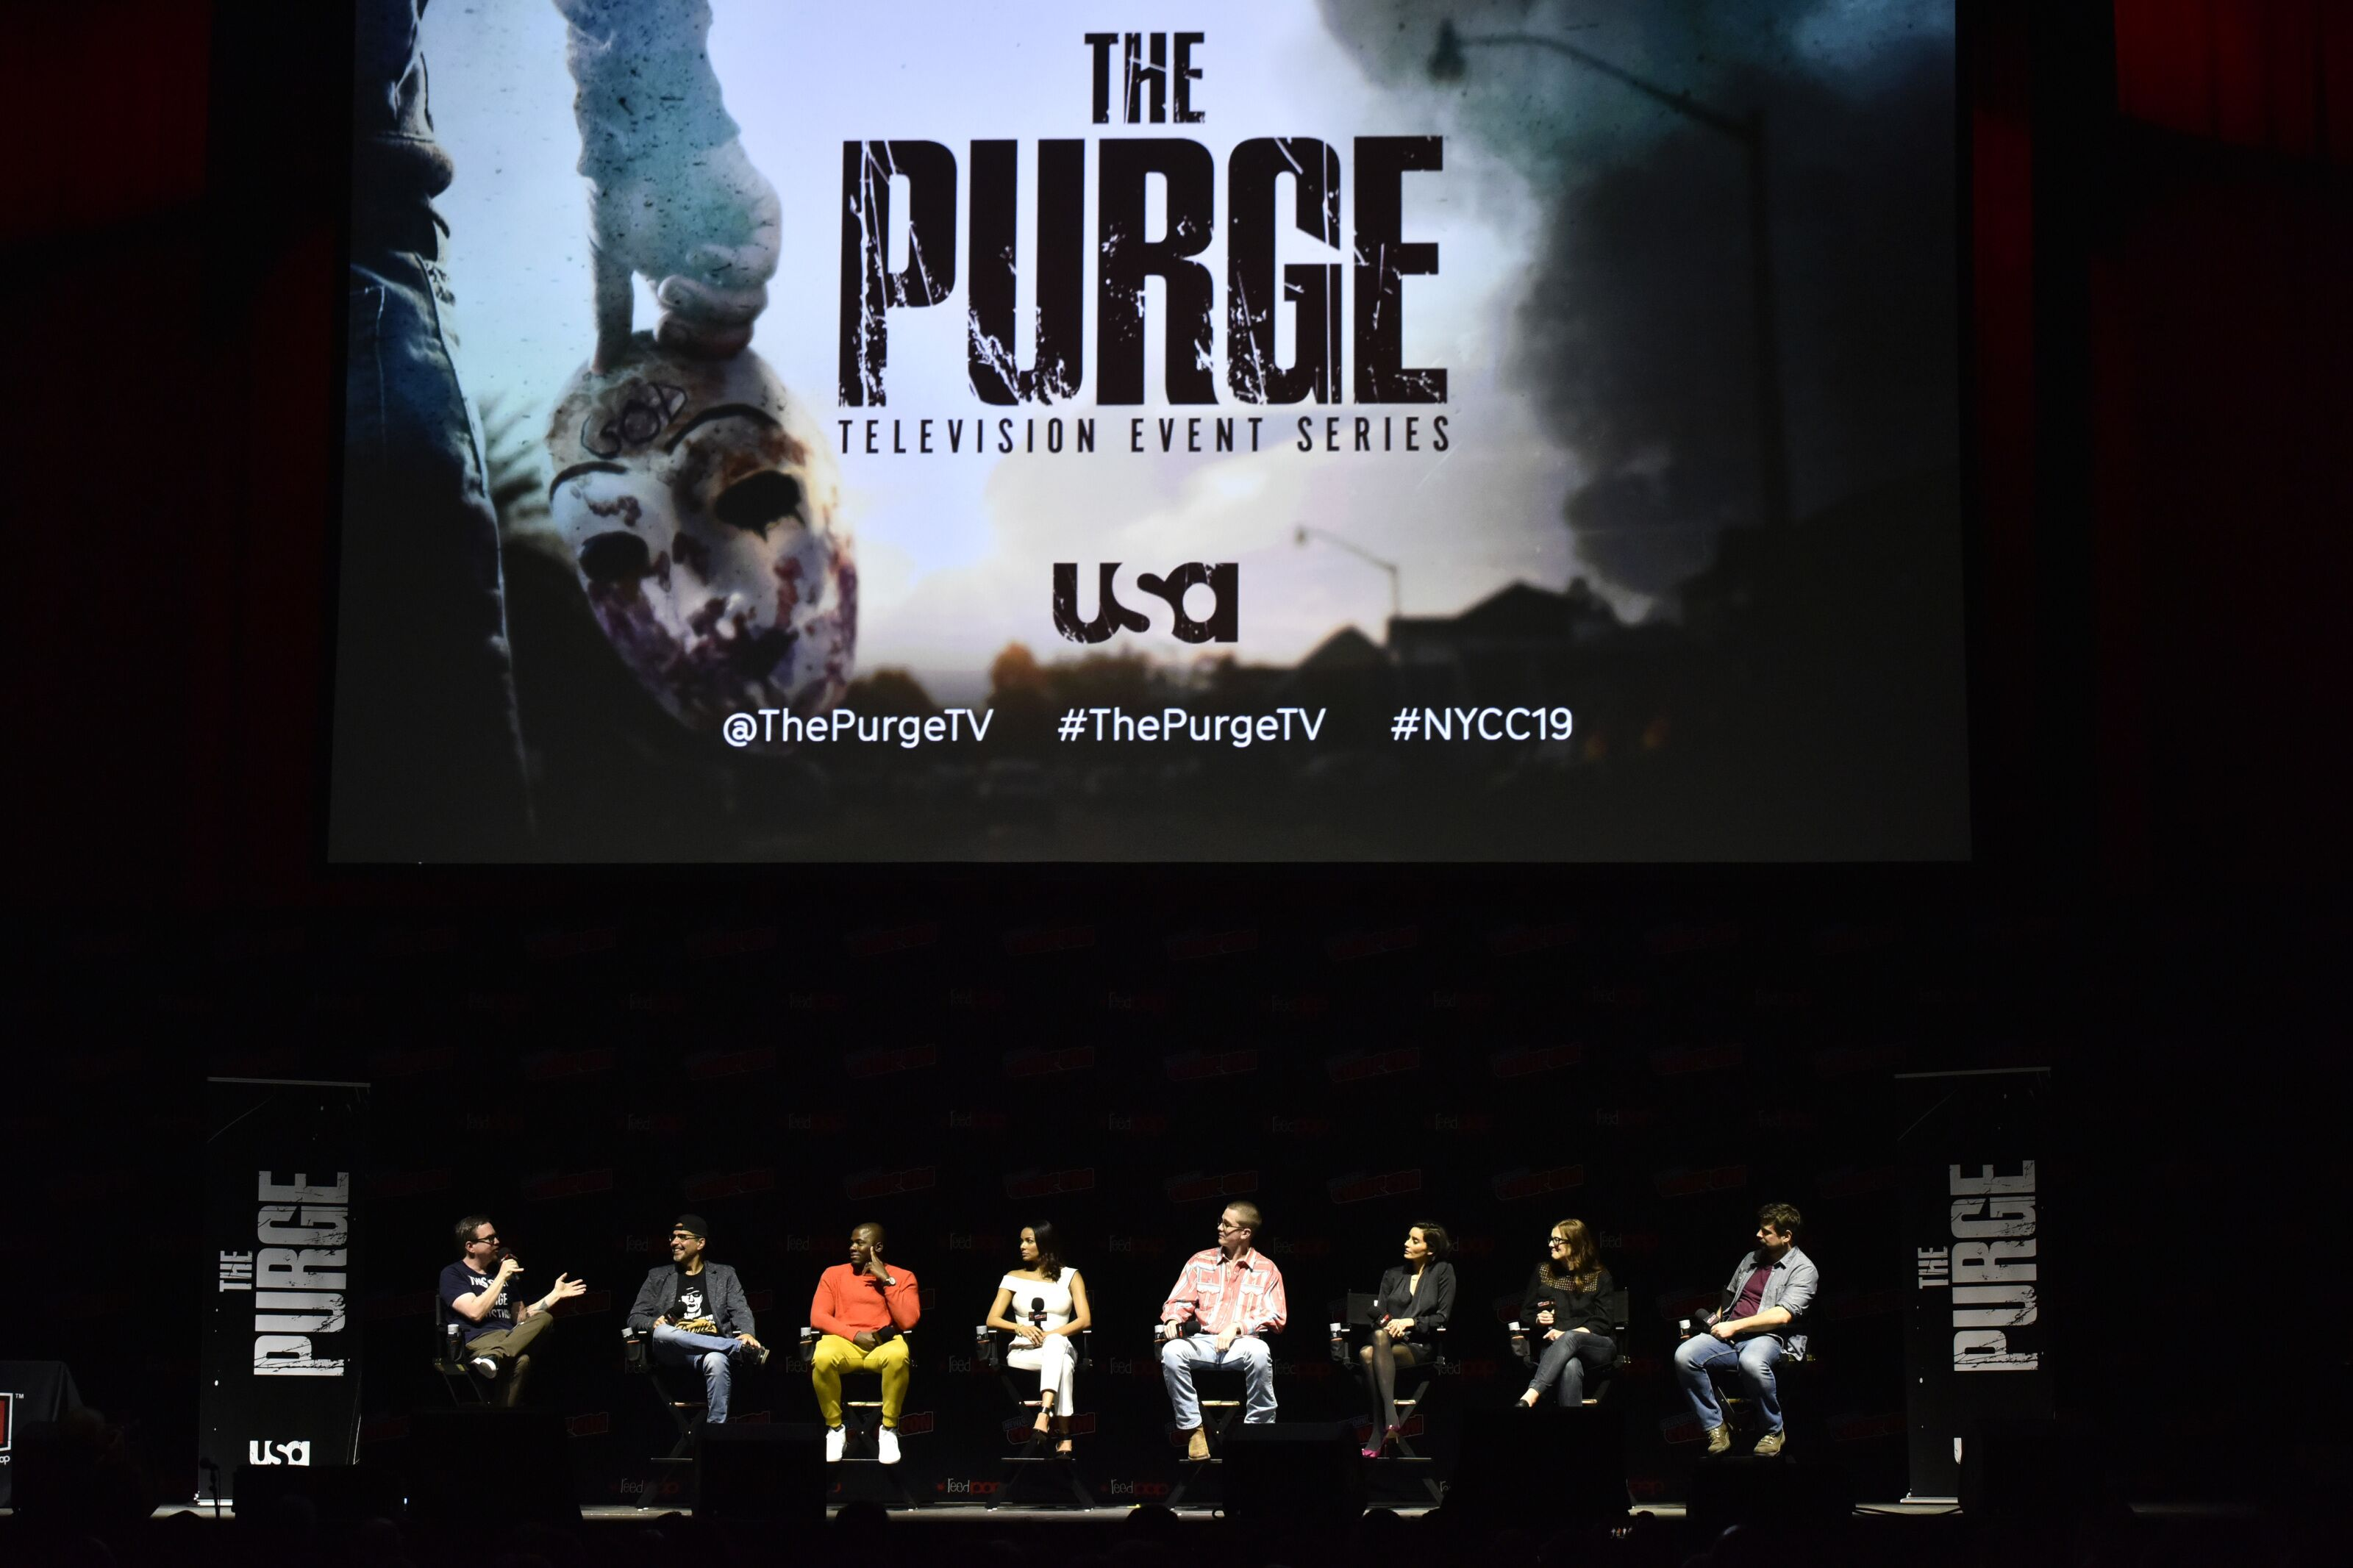 Watch The Purge Season 2, Episode 2 Everything Is Fine